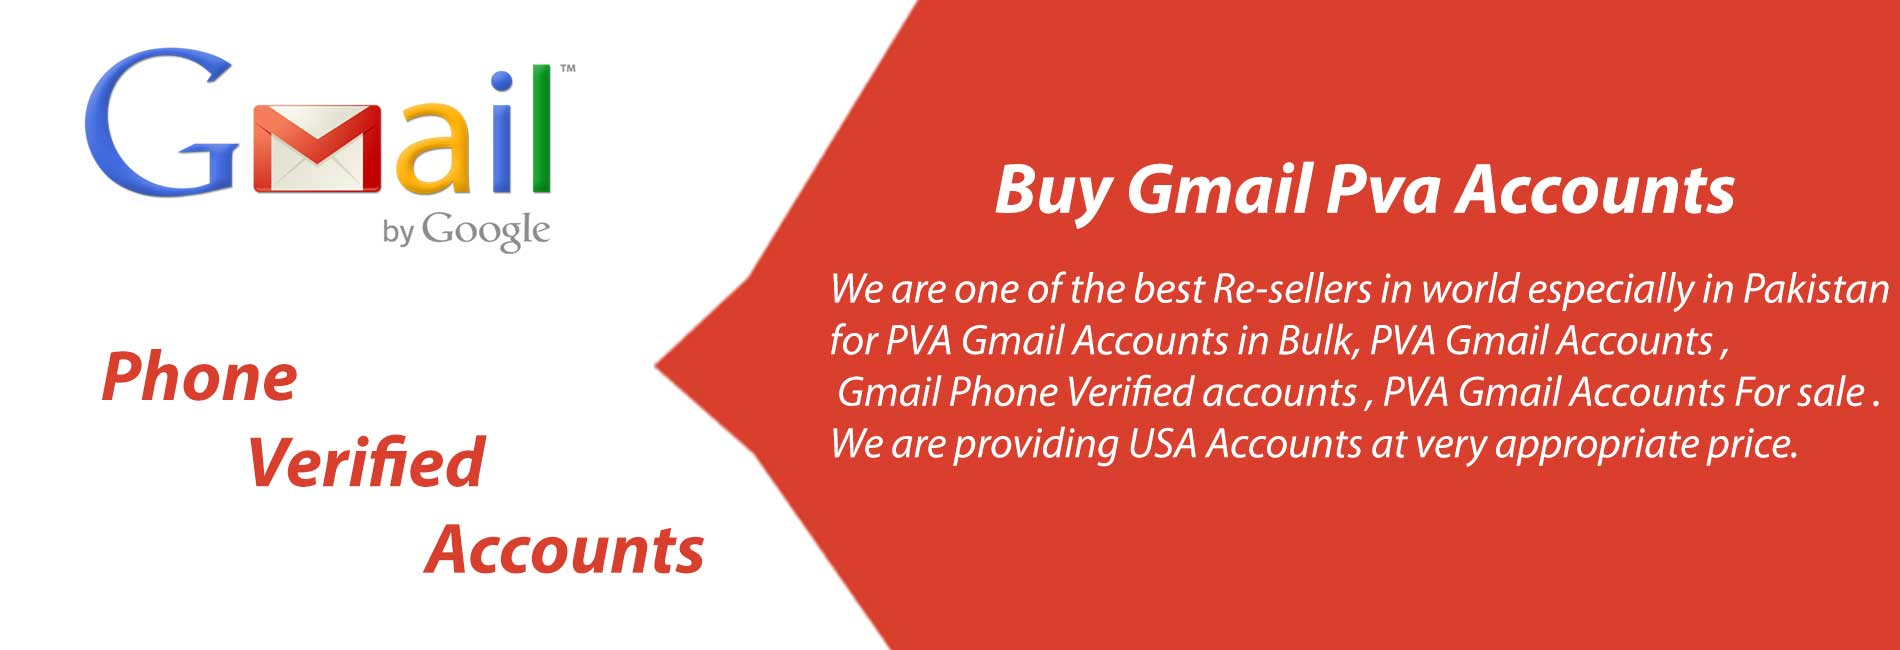 Buy Bulk Gmail Pva Accounts at Pvacorner com